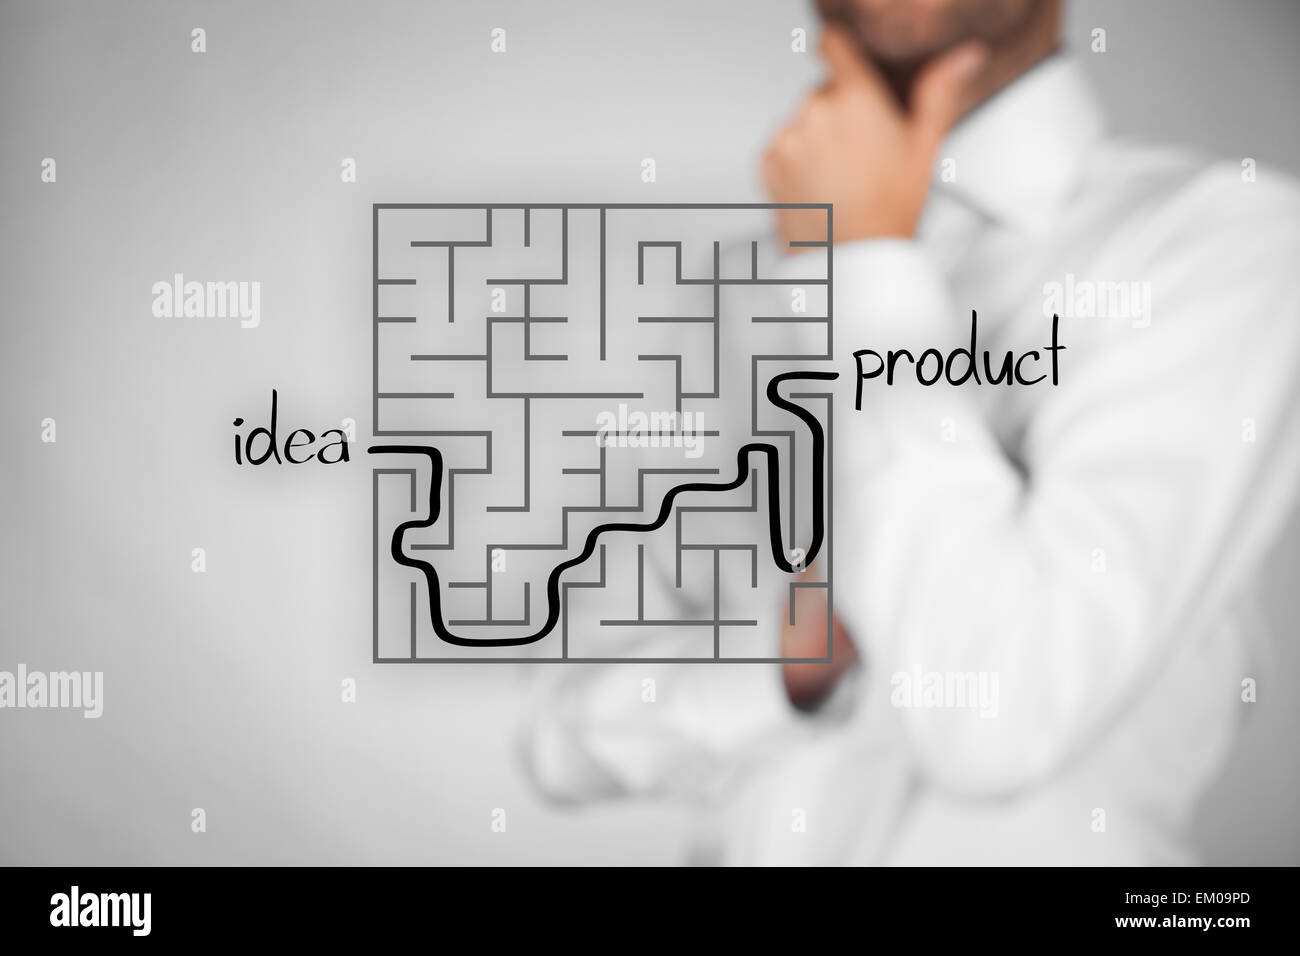 Long and difficult way from business idea to successful product. Marketing product specialist plan new product. - Stock Image